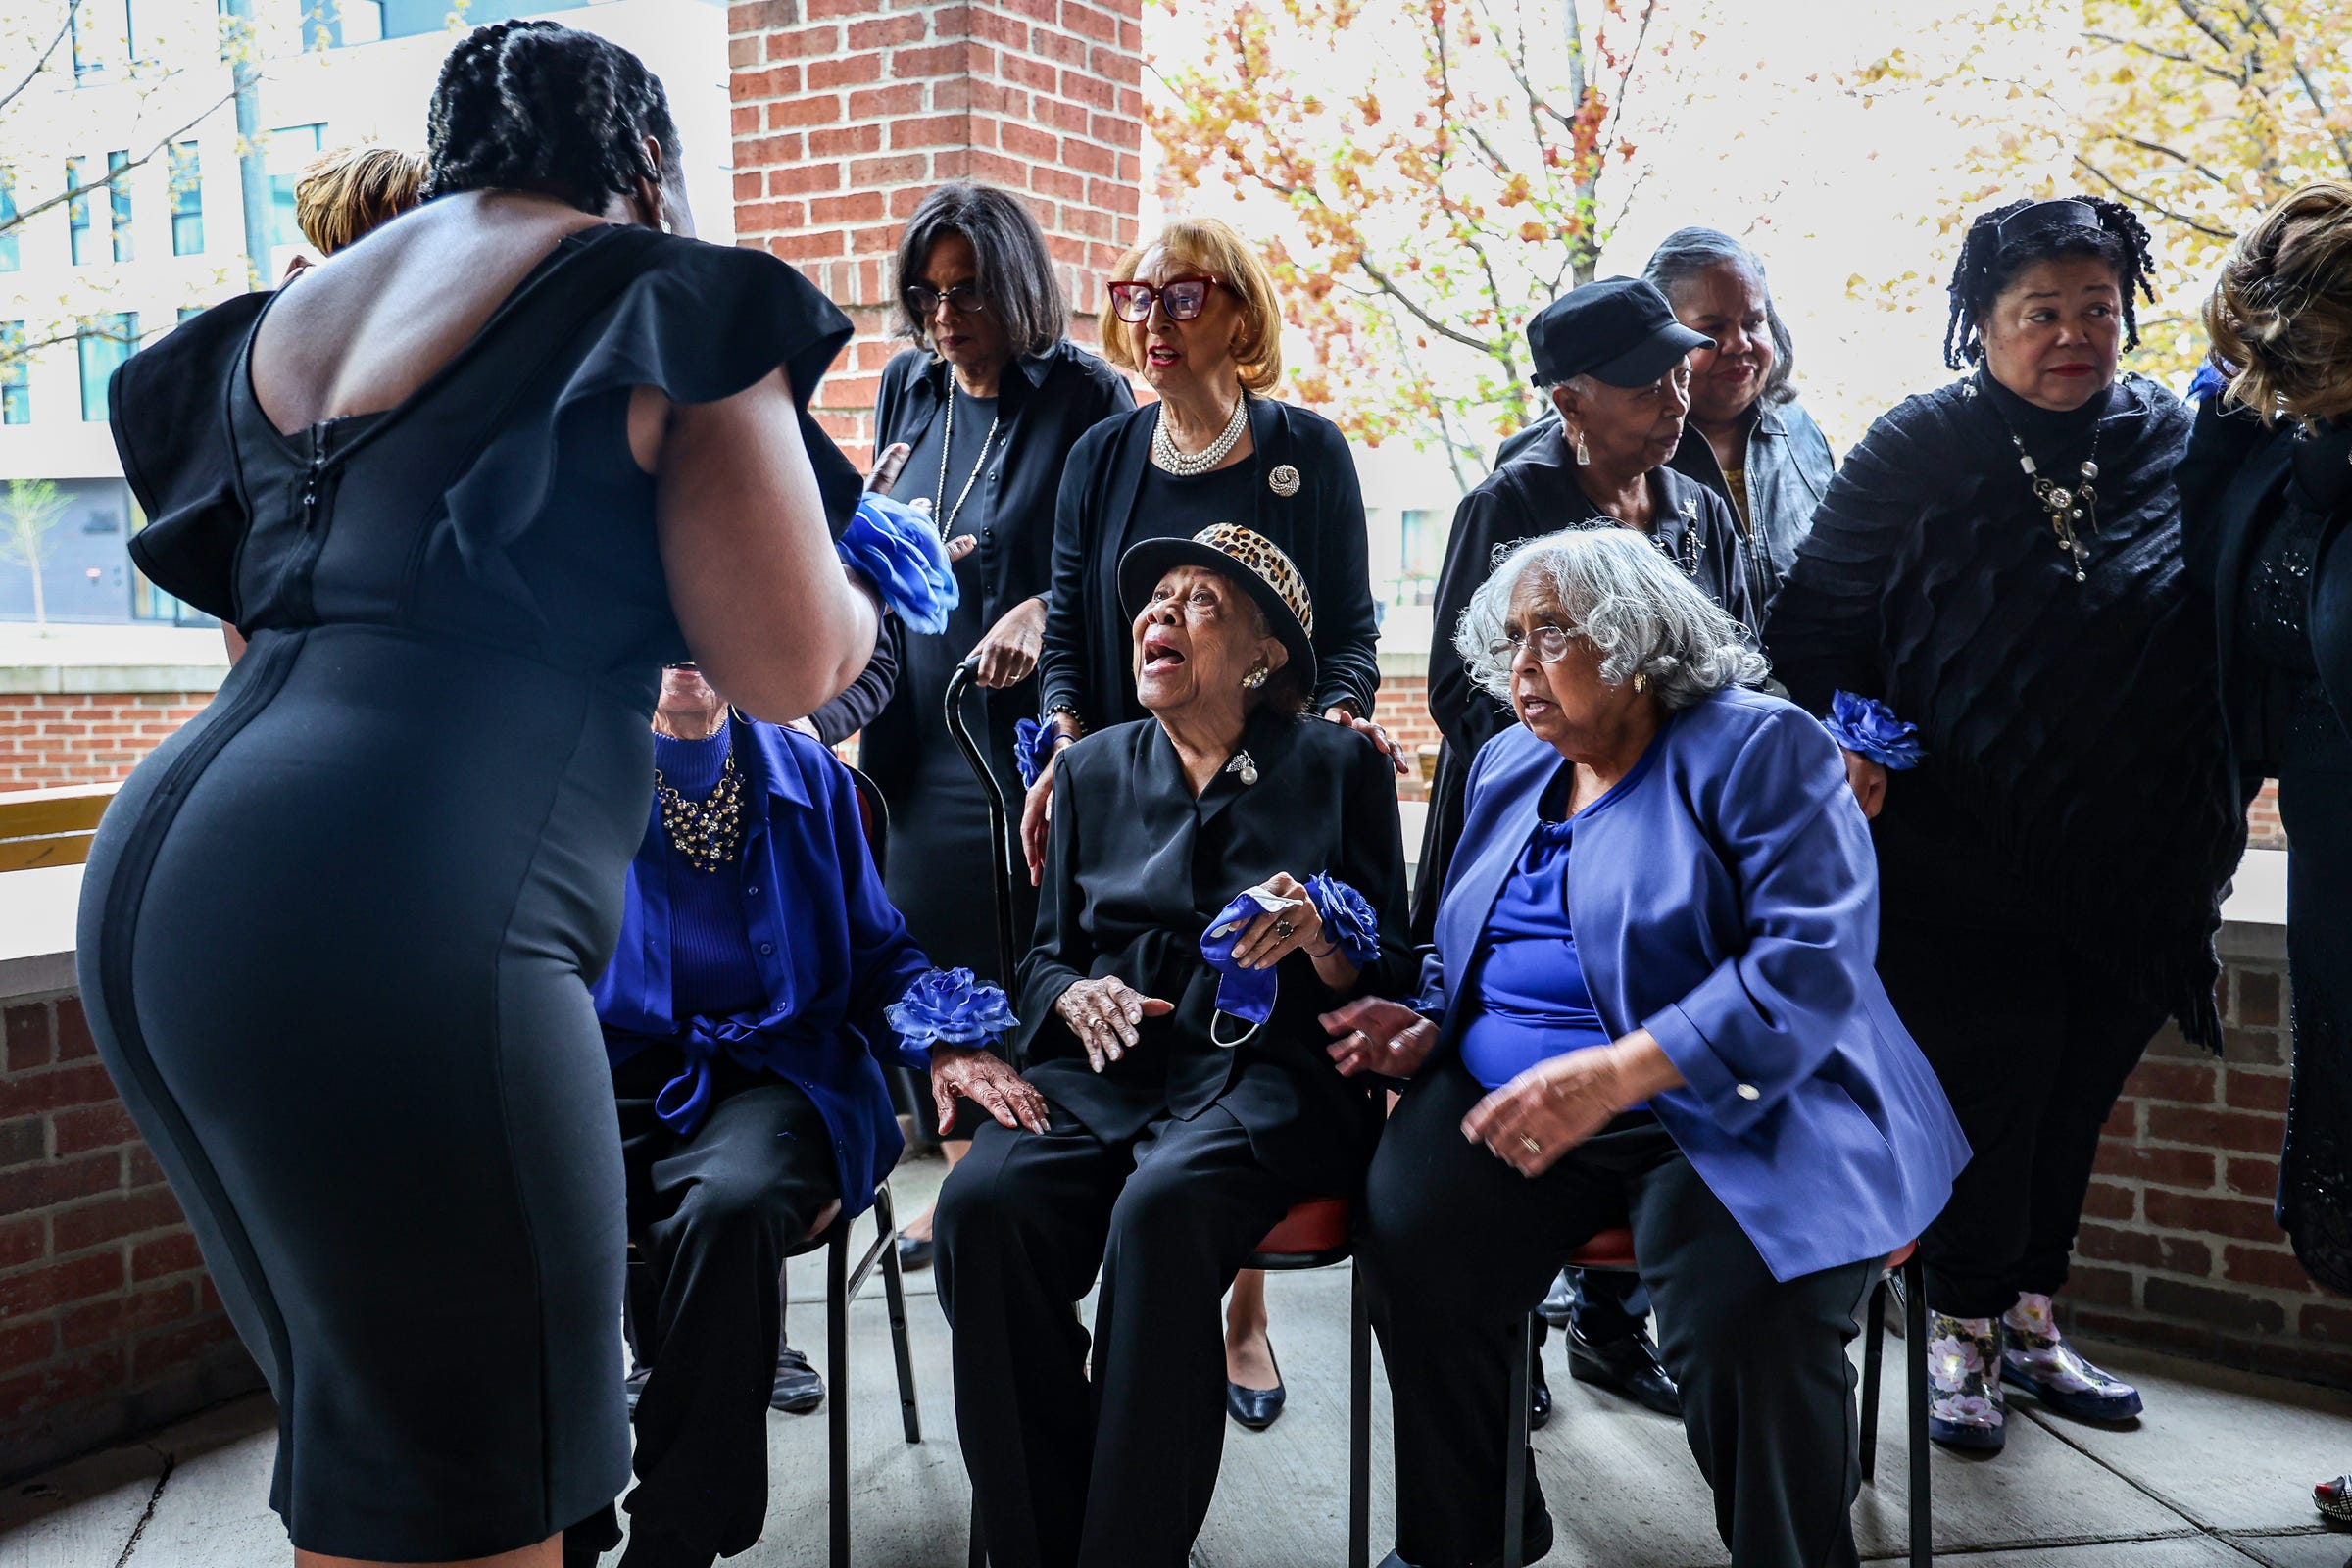 Members of the Elliottorian Business and Professional Women's Club mingle after posing for a photo at the Village of Brush Park Manor Paradise Valley in Detroit on April 29, 2021.  The Elliottorian Business and Professional Women's Club is the first club of Black business women in Detroit and Michigan and was founded in 1928.